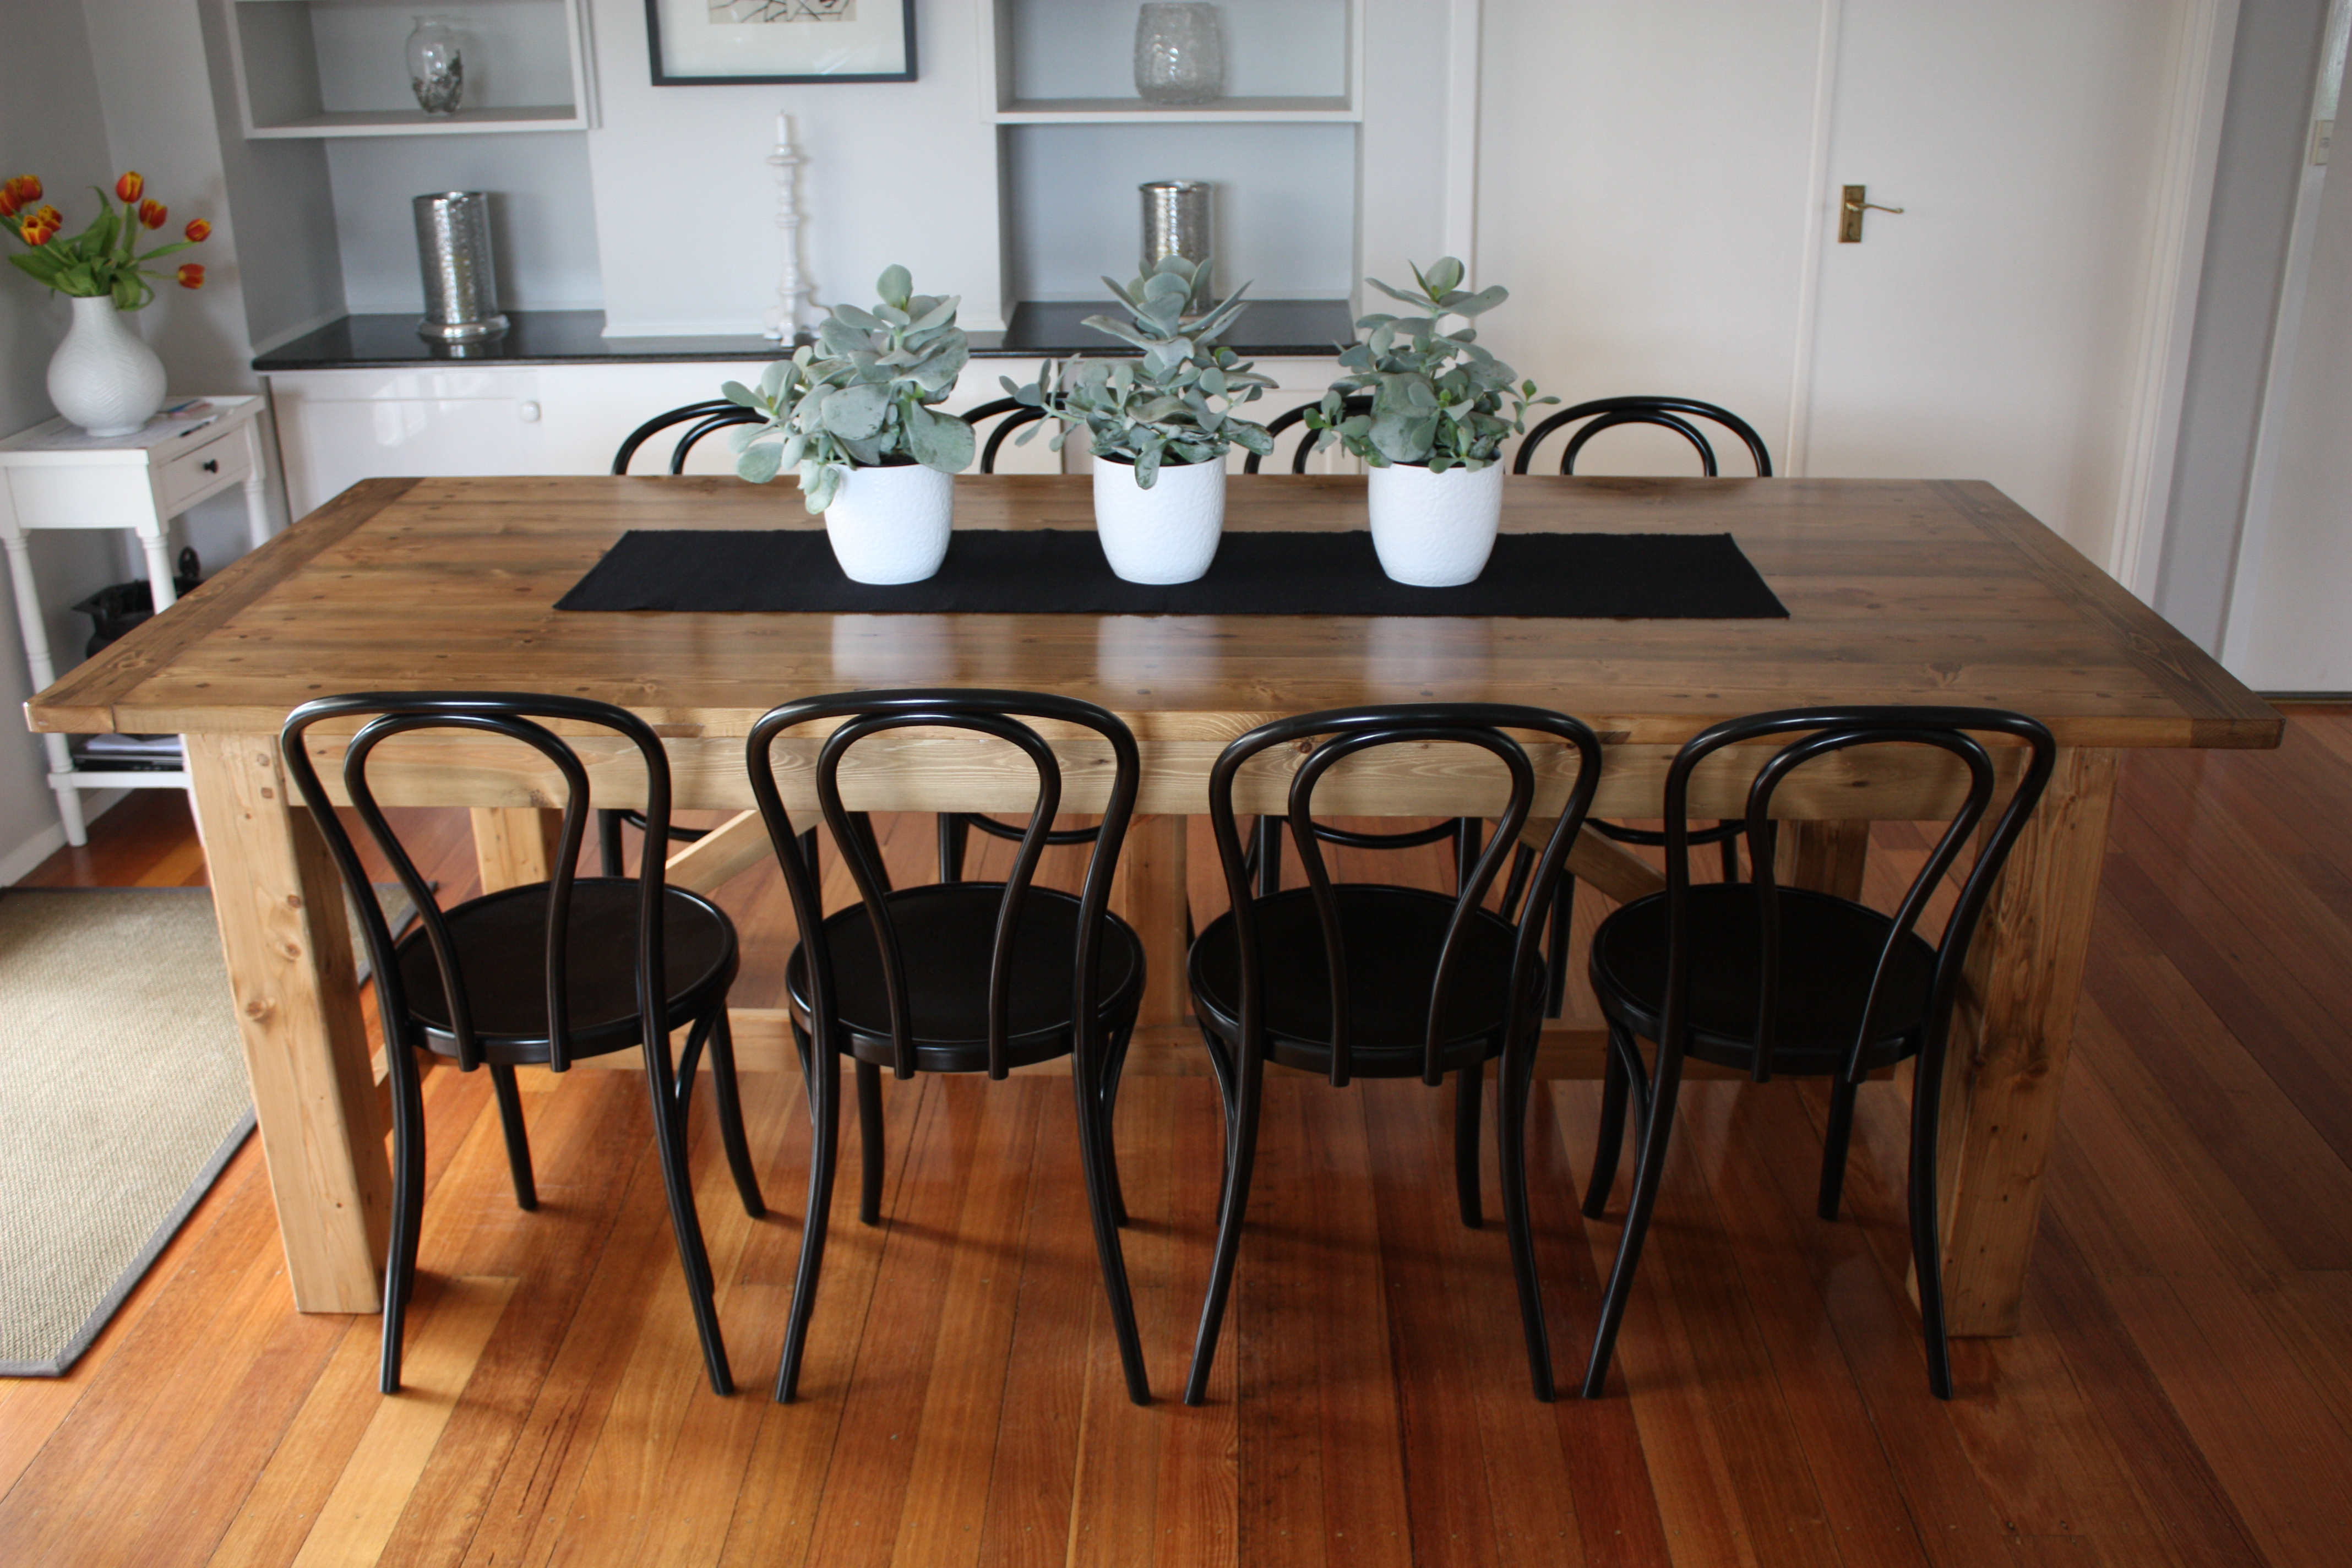 Full Length Shot Showing 8 Bentwood Chairs All Lined Up Neatly